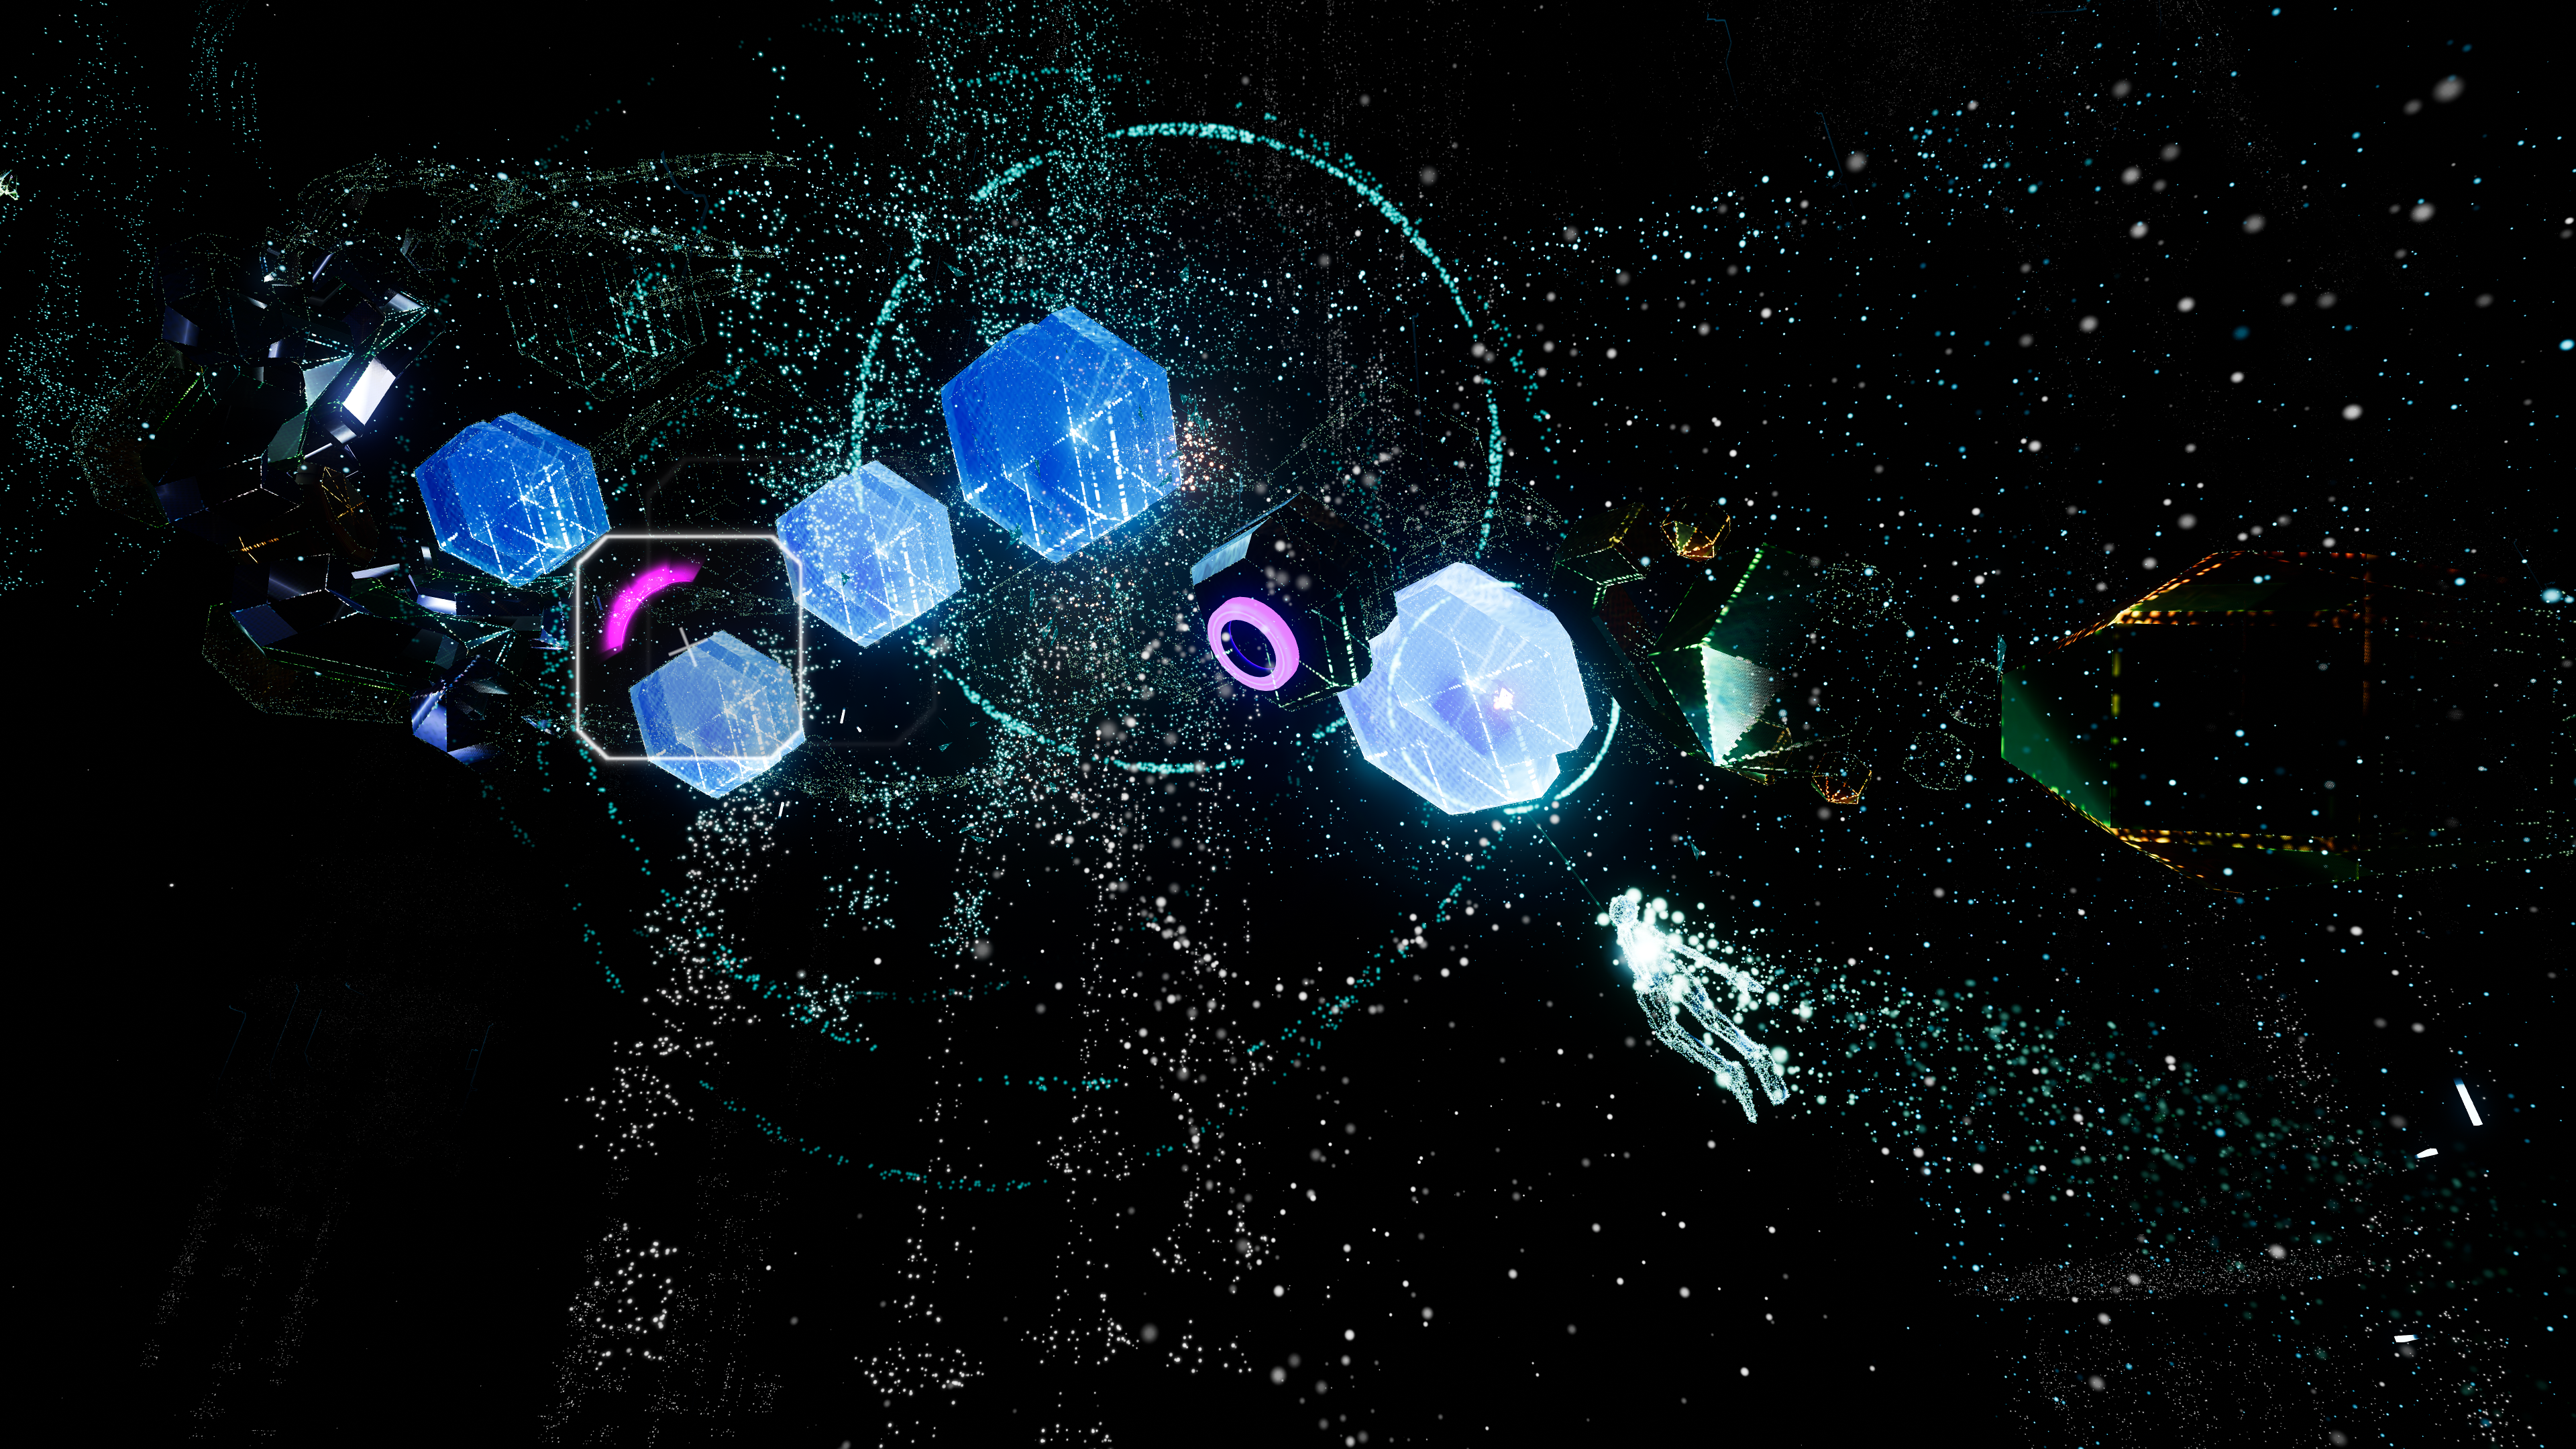 Psychedelic Rail-Shooter Rez Infinite Comes to Oculus Rift and HTC Vive